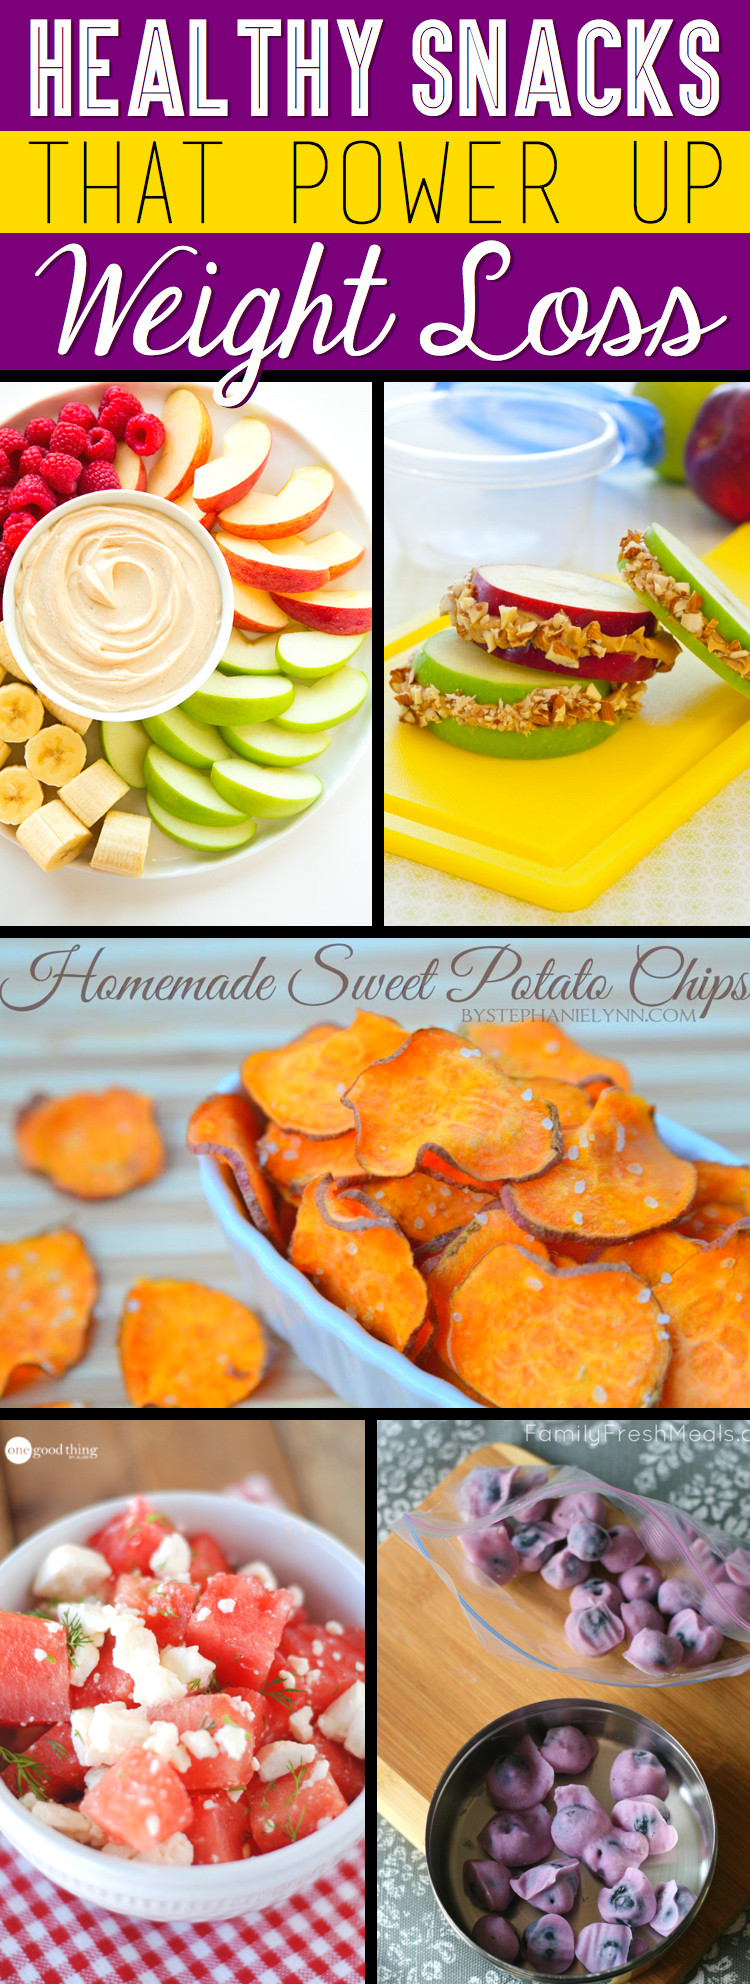 Healthy Afterschool Snacks For Weight Loss  Diy Easy Snacks To Make At Home Diy Do It Your Self